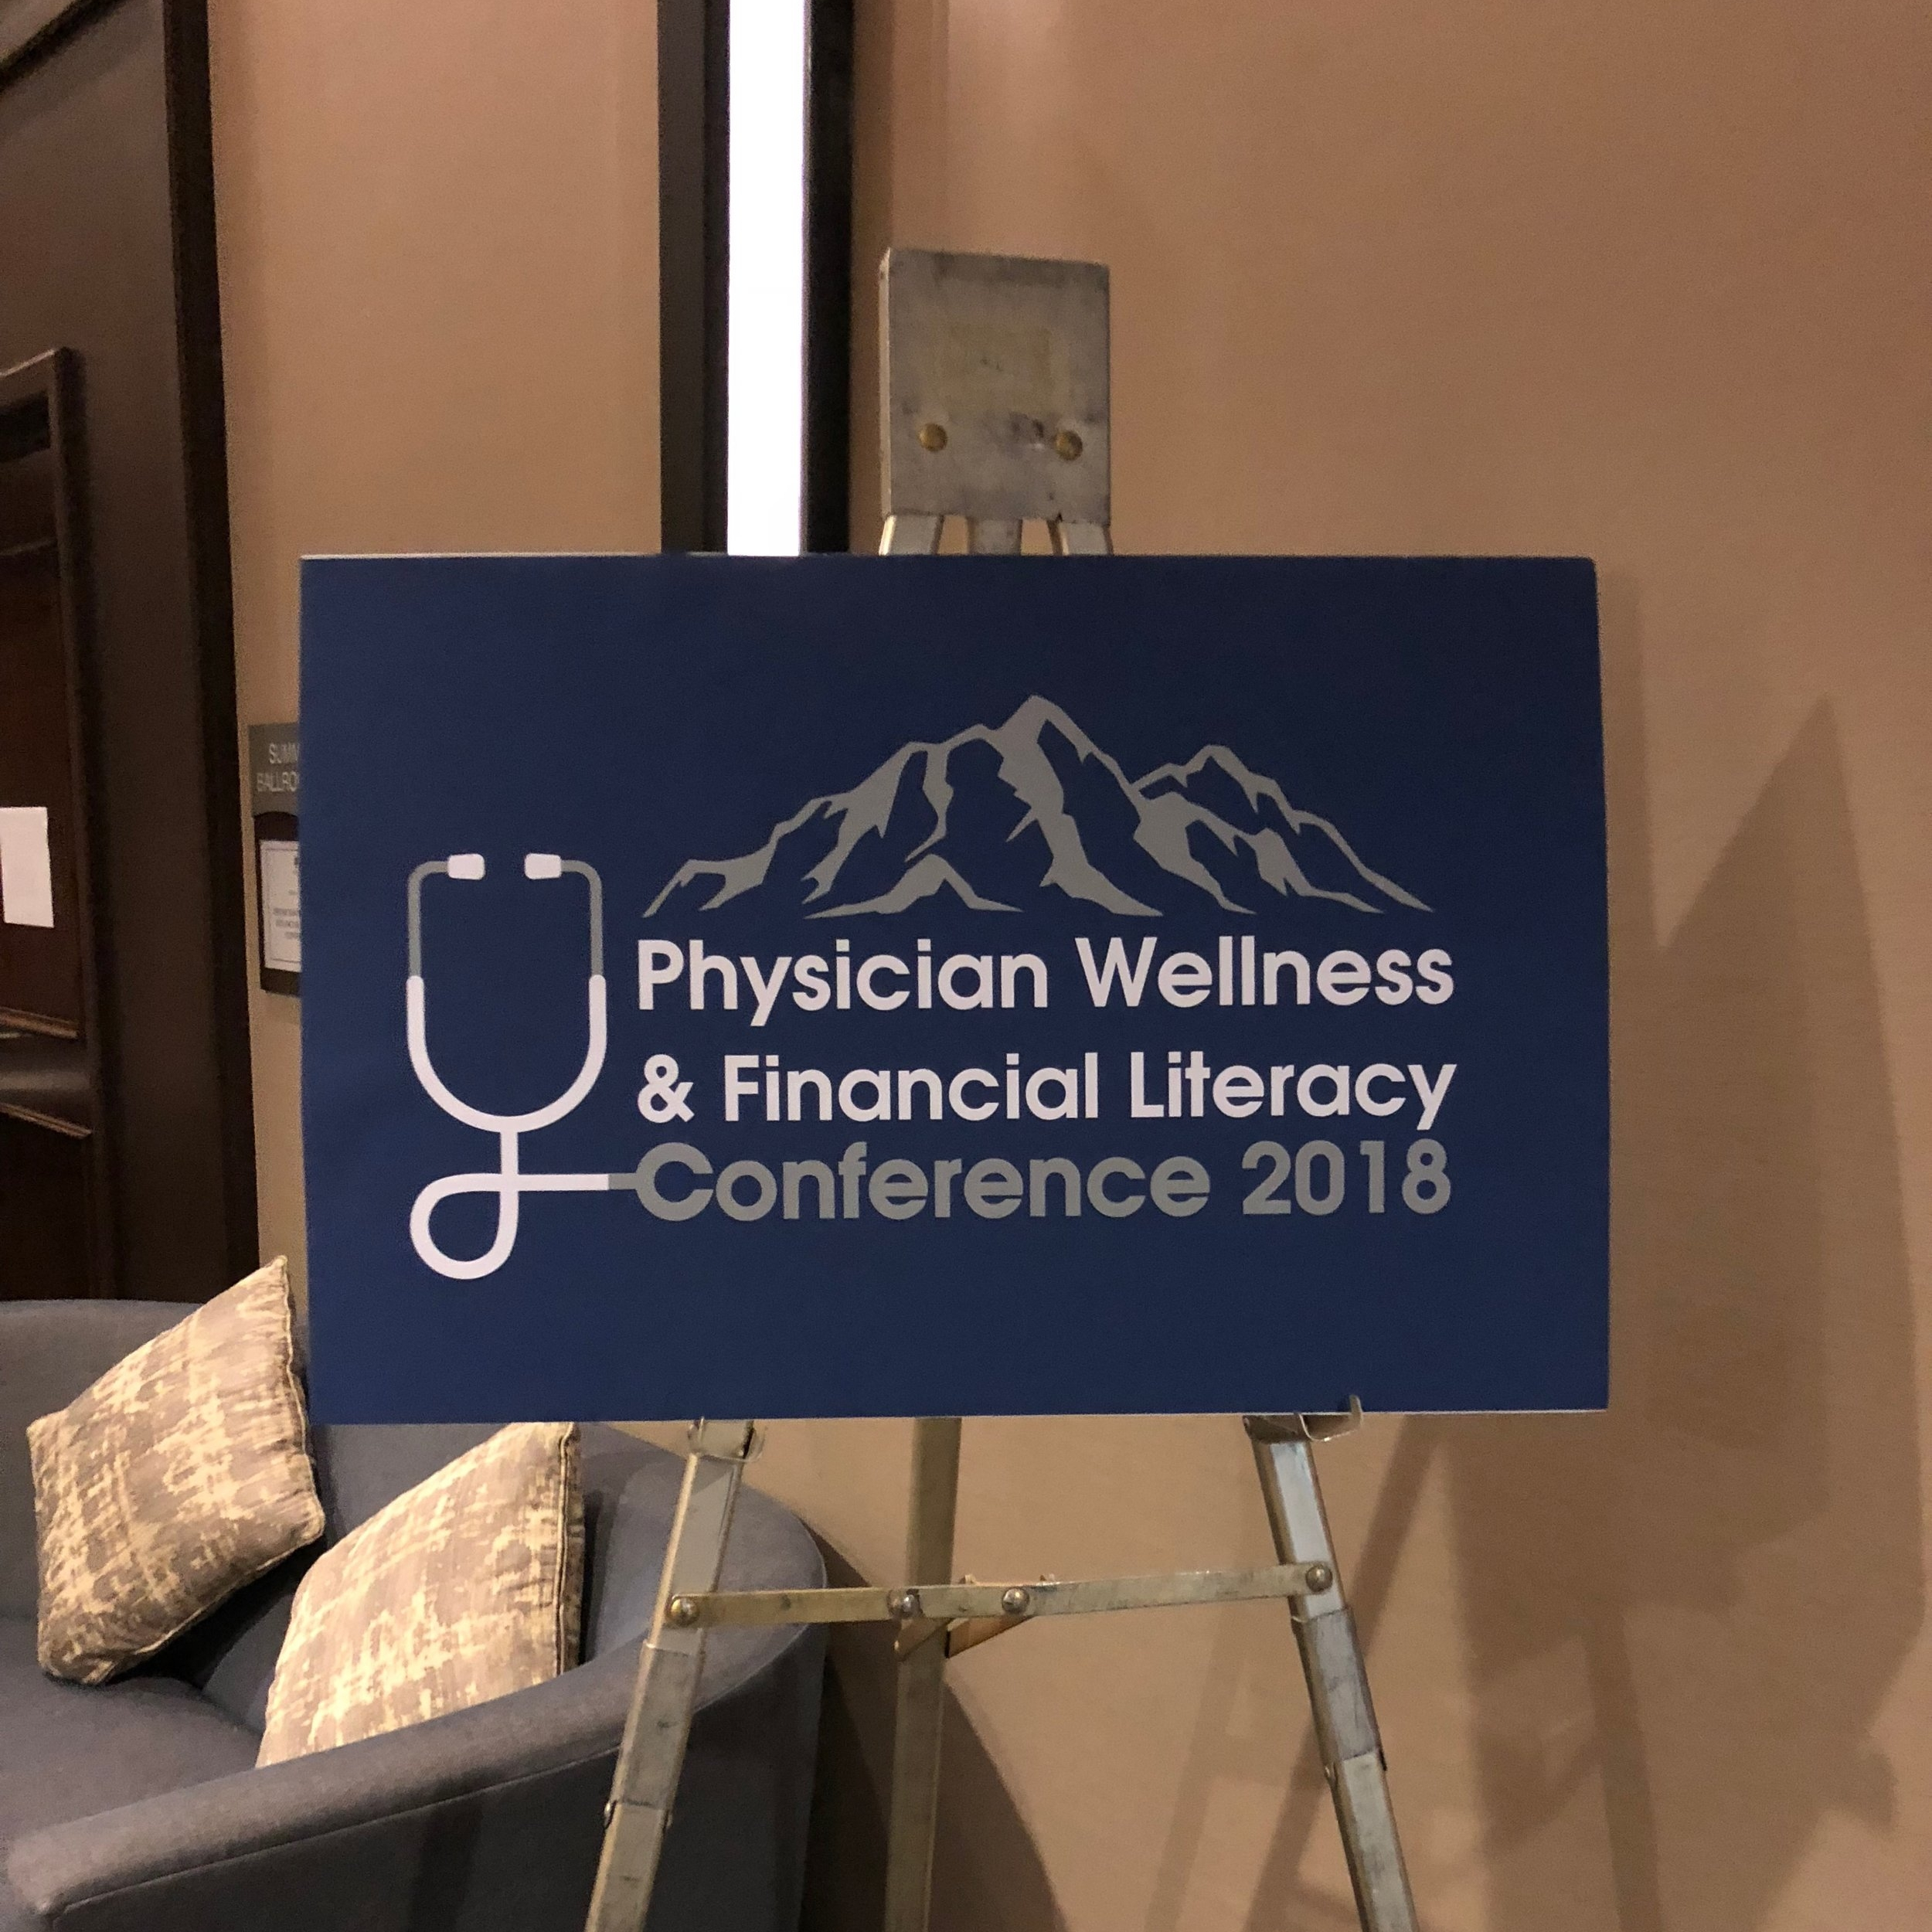 White Coat investor Conference (March 1-4, 2018) Park City, UT